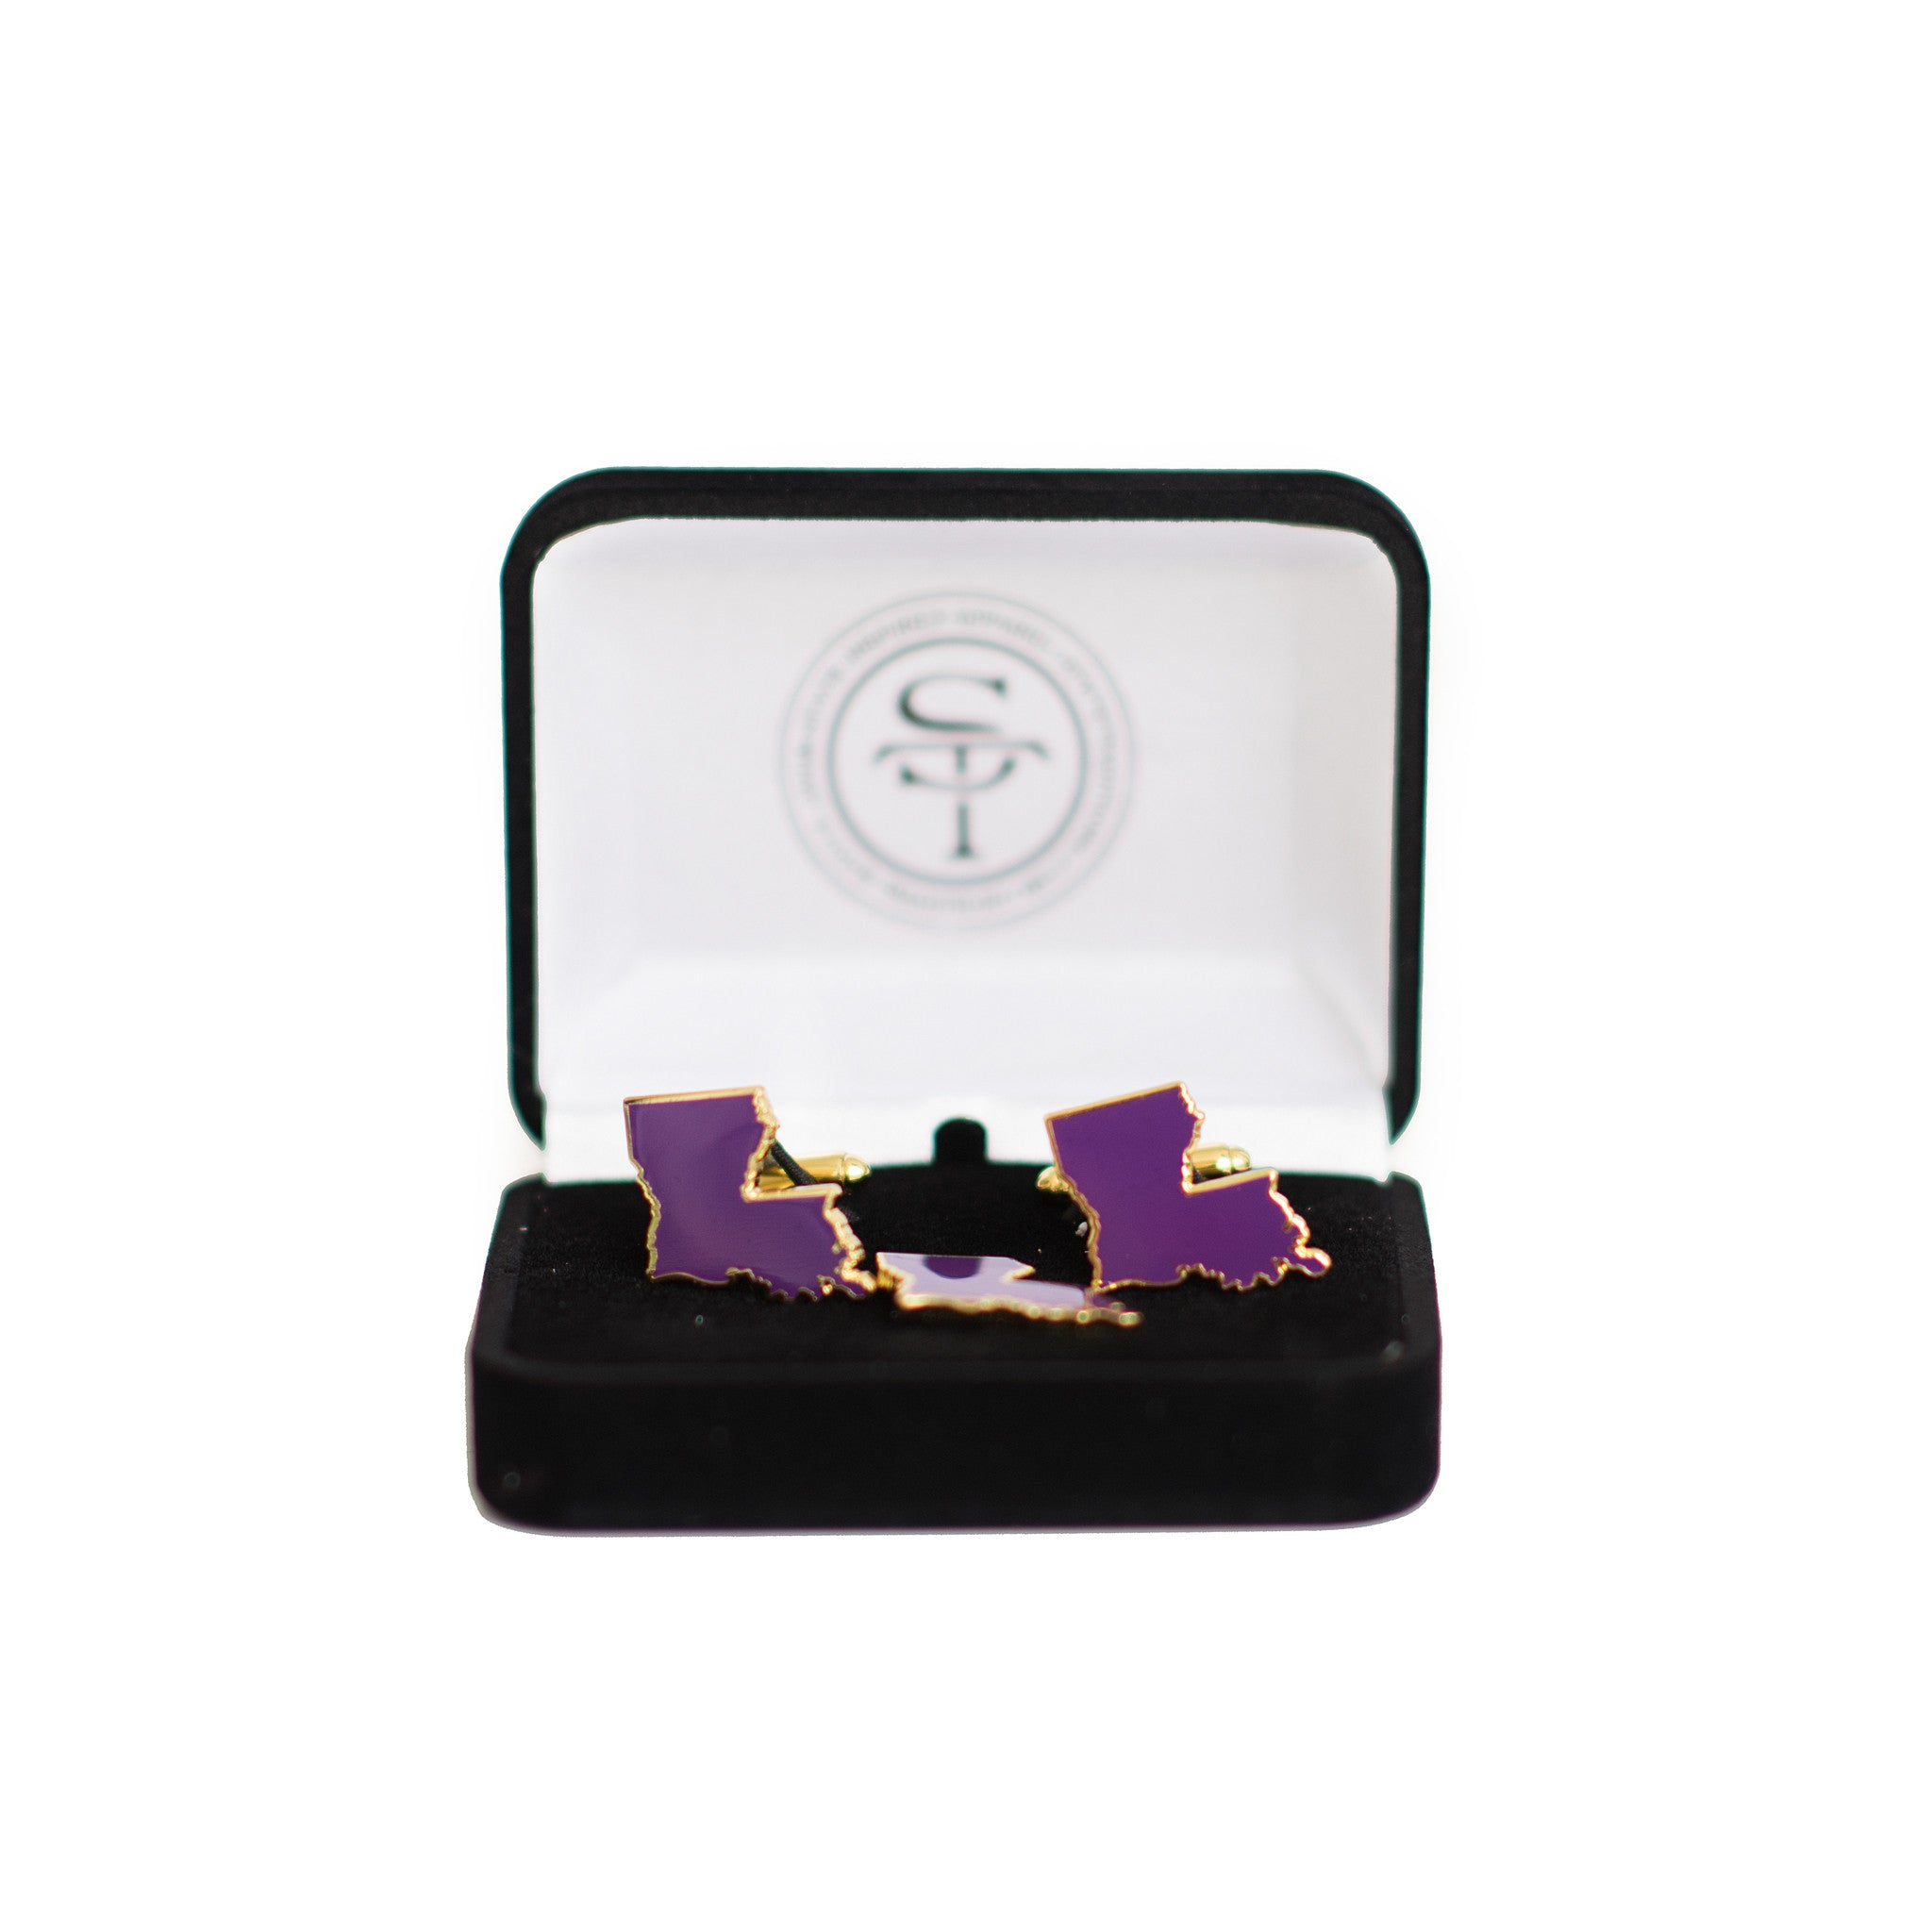 Louisiana Baton Rouge Gameday Cuff Links Set - State Traditions